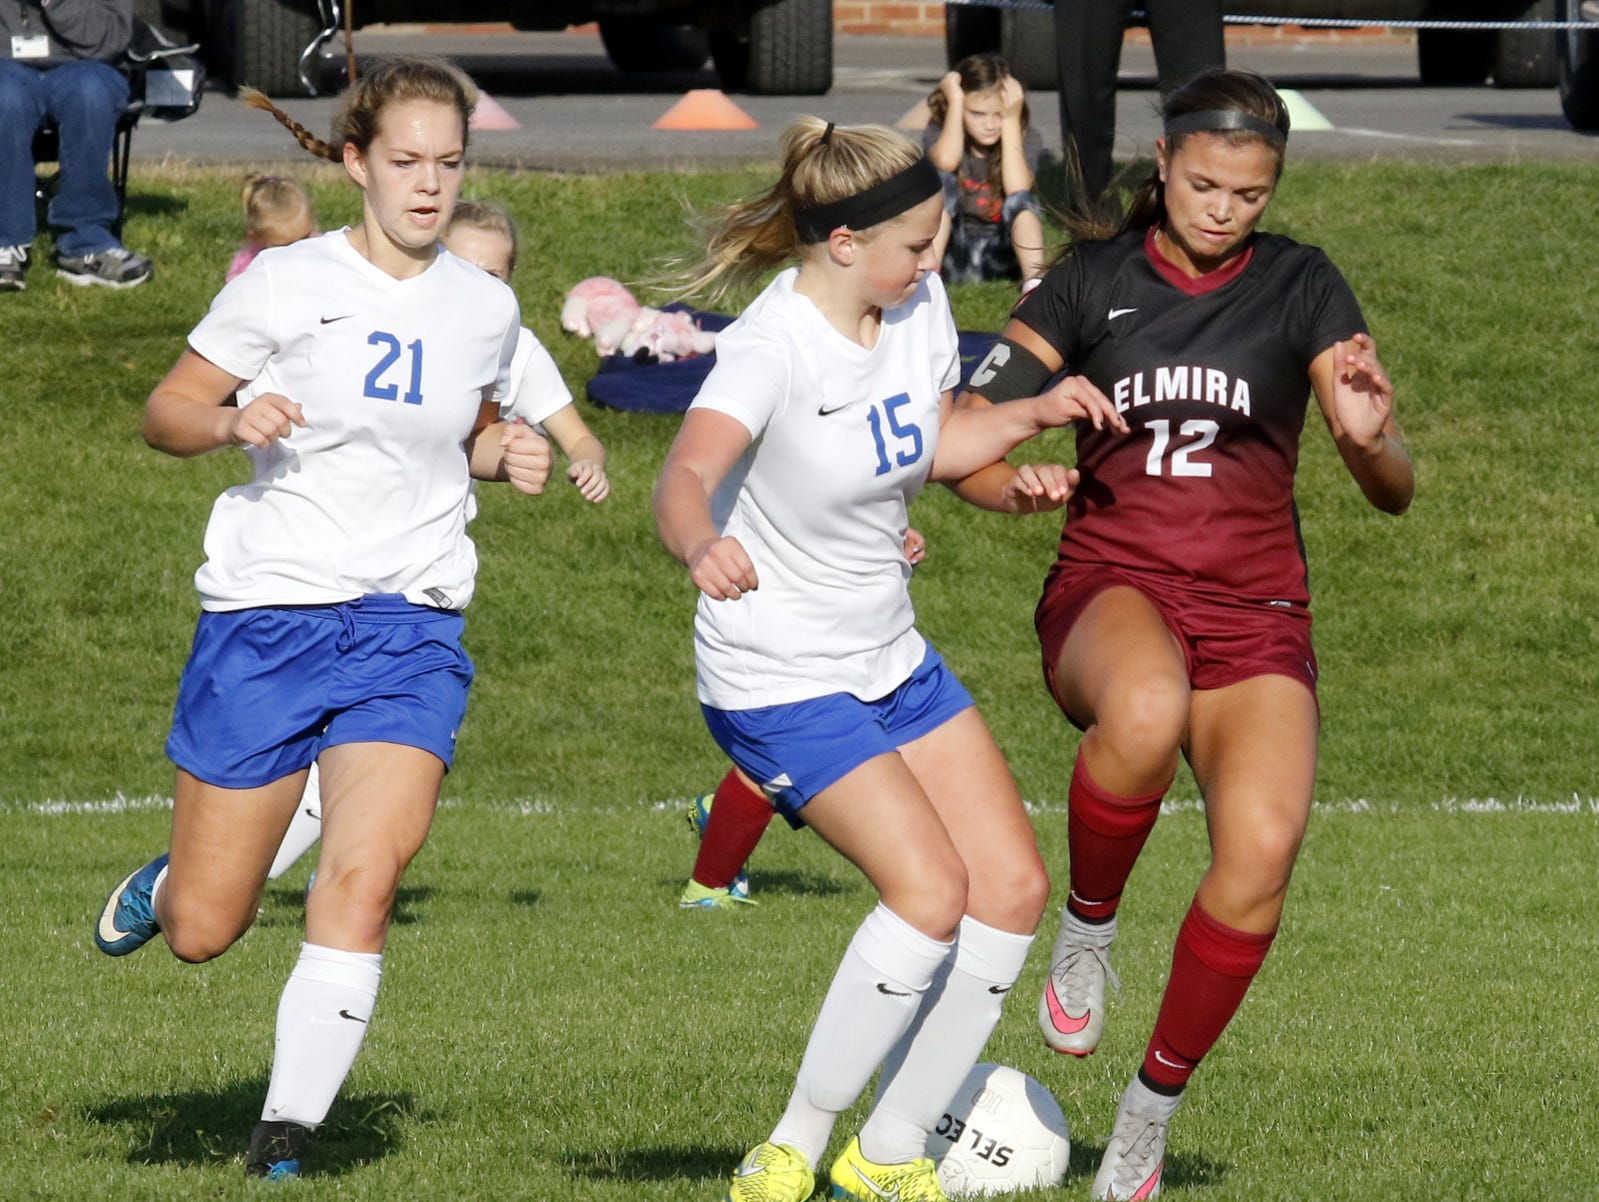 Elmira's Meredith Fennell and Horseheads' Abby Clark battle for possession as the Blue Raiders' Chelsey Seeley closes in during the teams' 1-1 girls soccer tie Thursday at Horseheads.